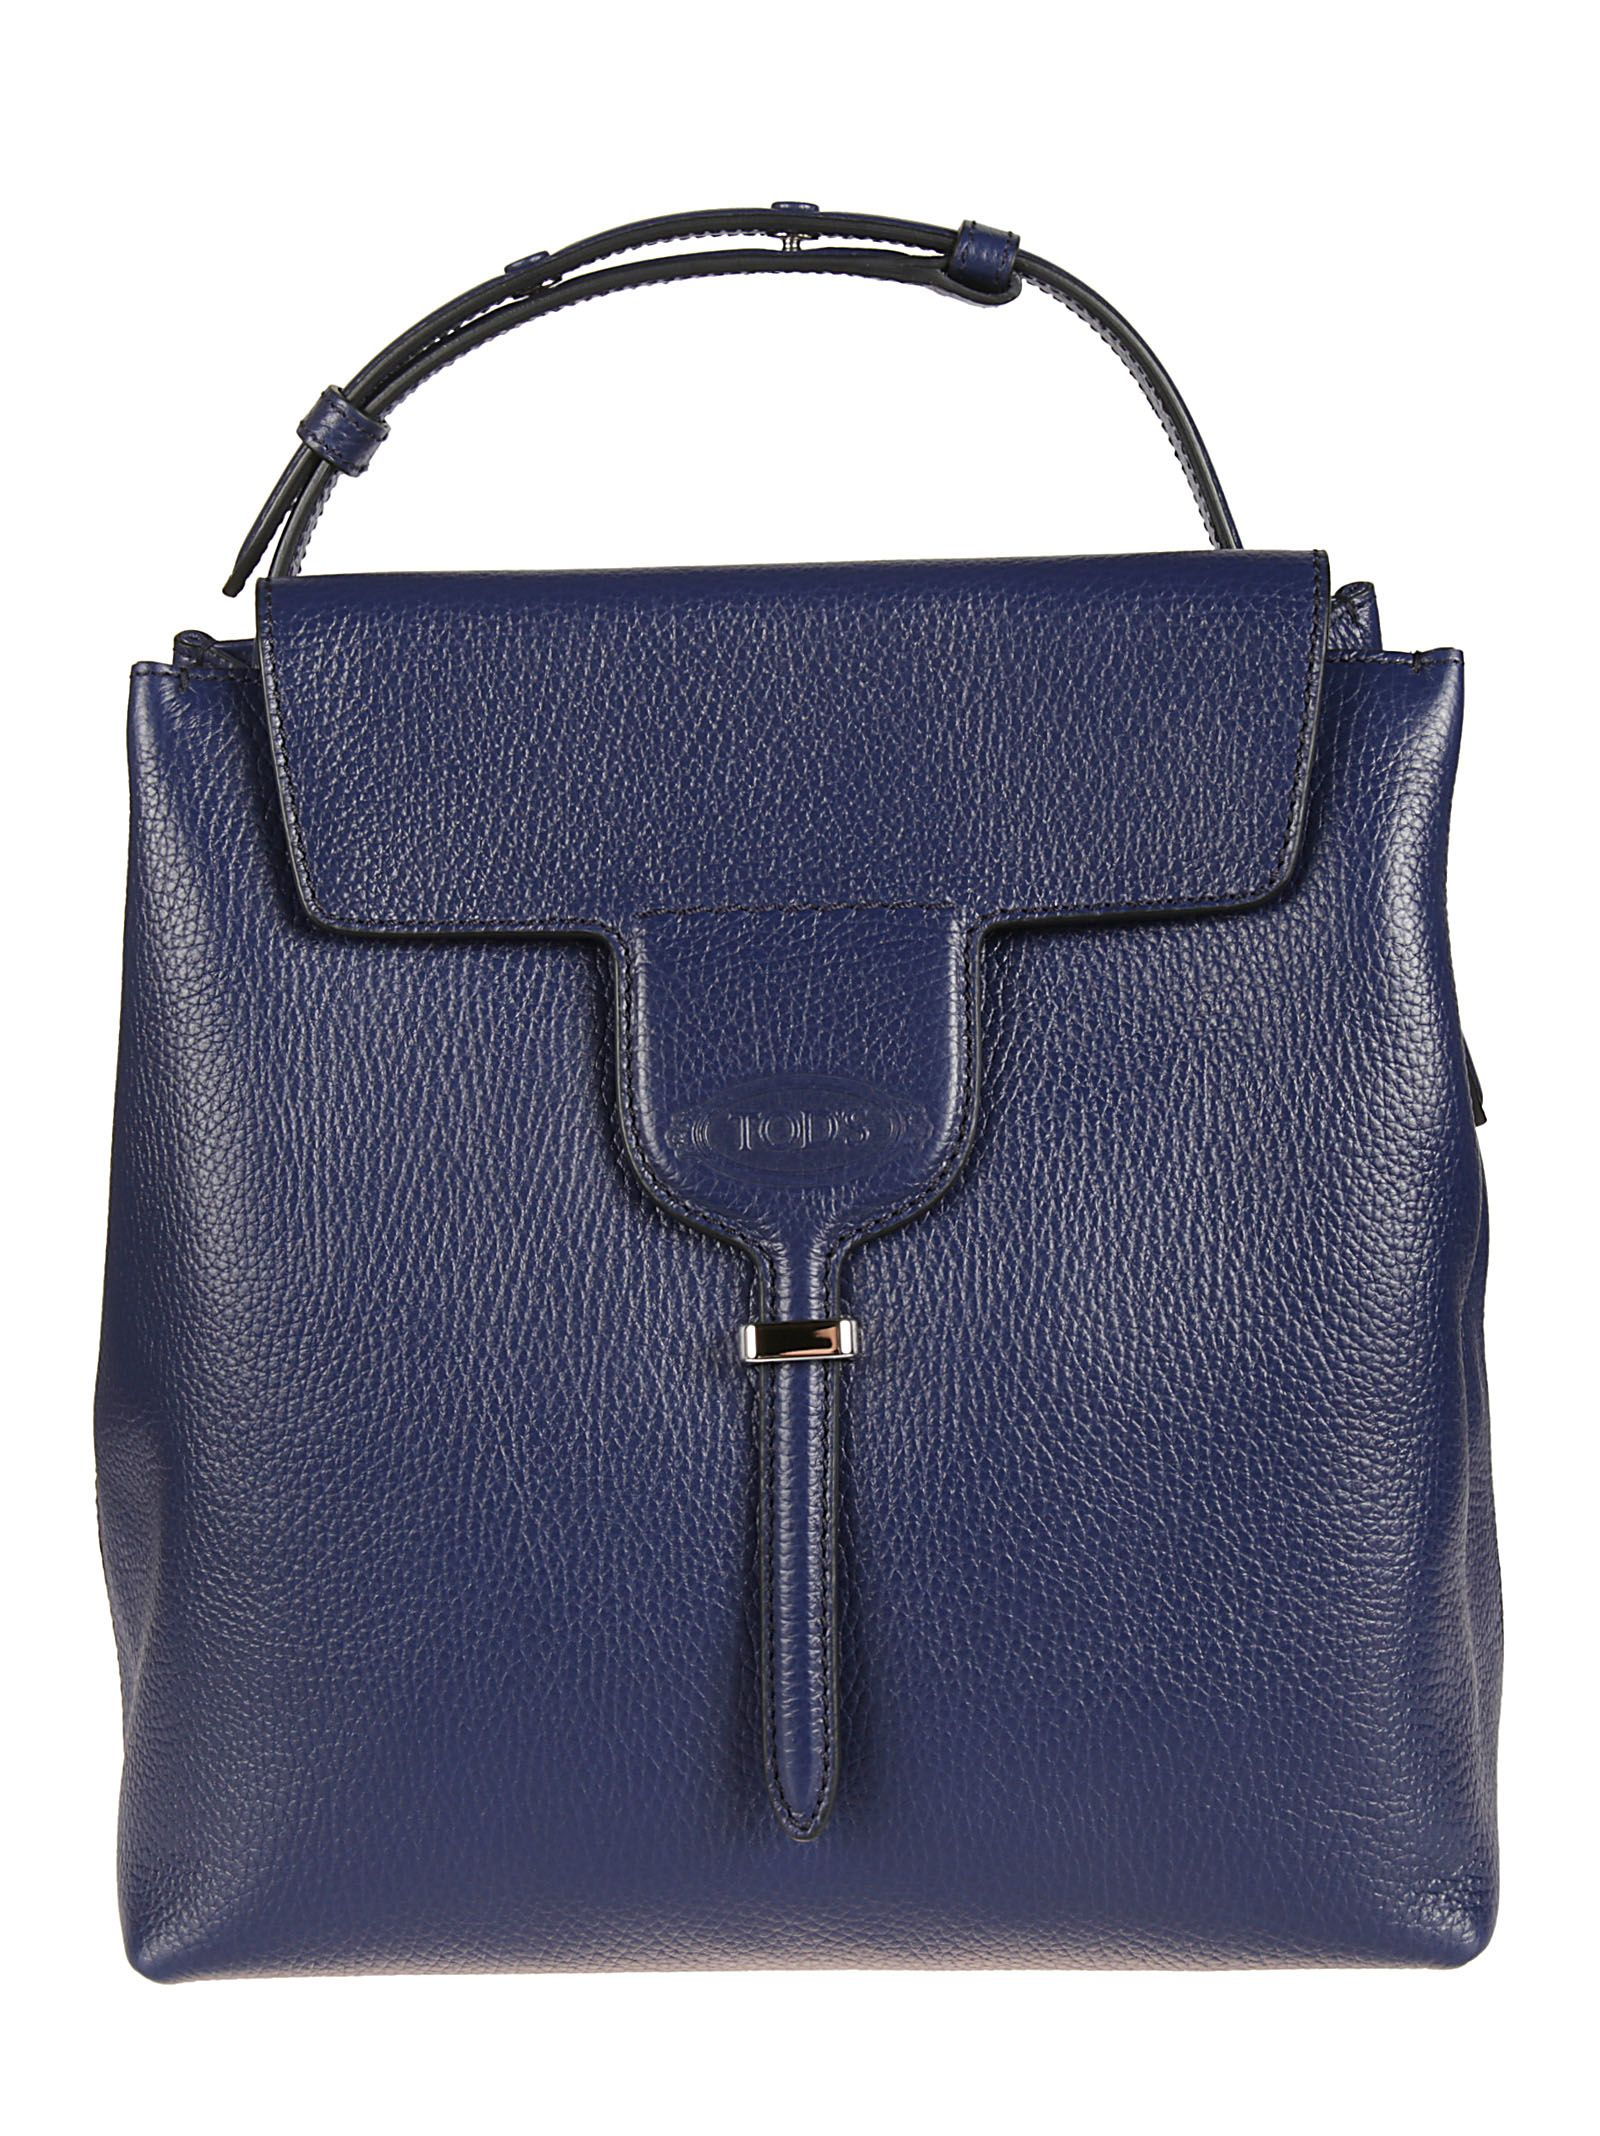 67613d91bf Tod's Tod's Small Joy Shoulder Bag - blue - 10856216 | italist